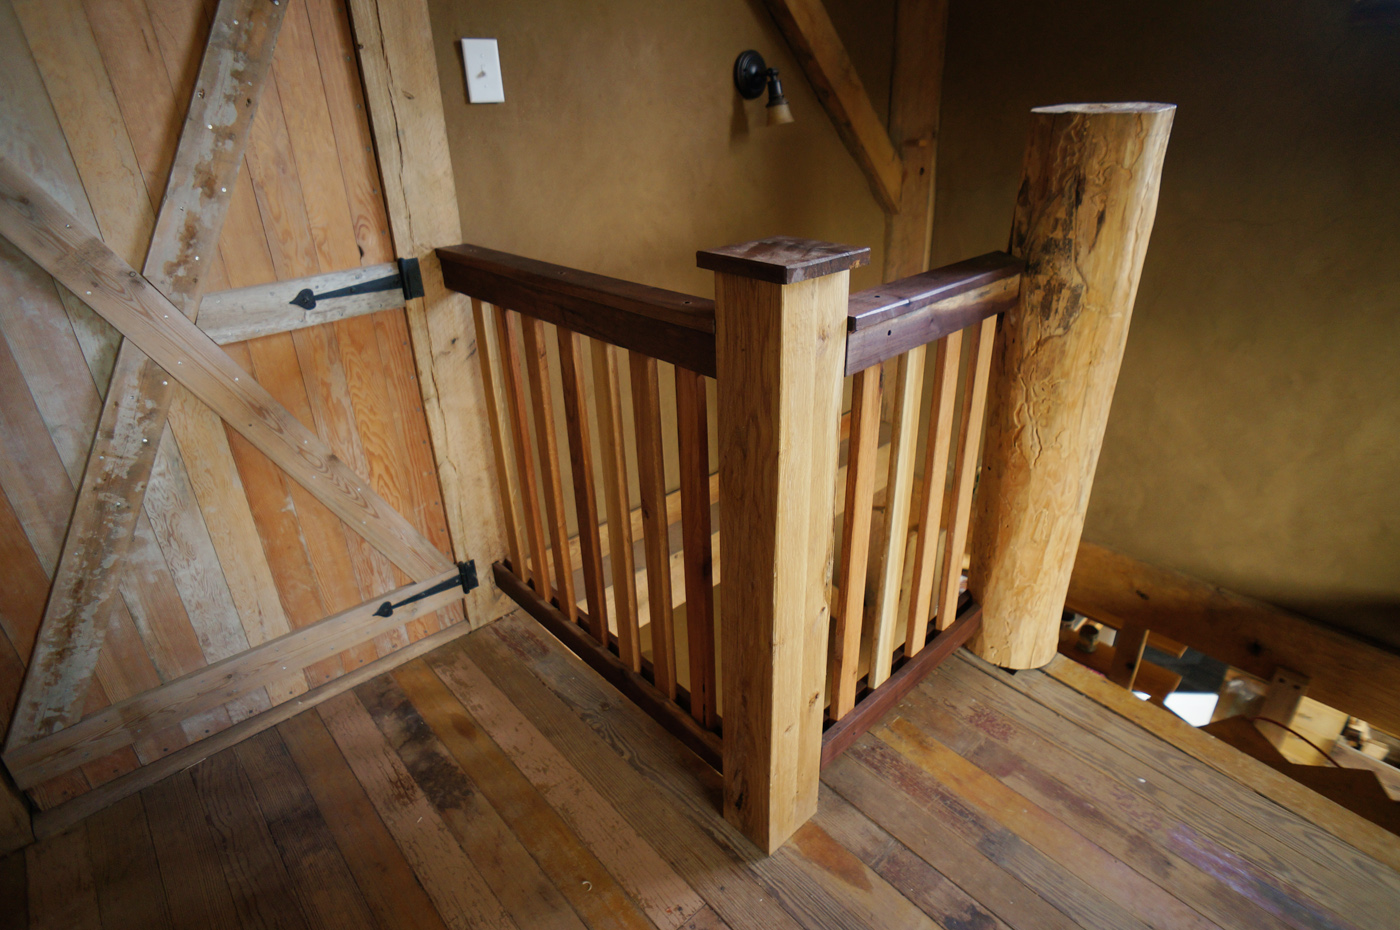 Building A Diy Wooden Interior Stair Railing The Year Of Mud